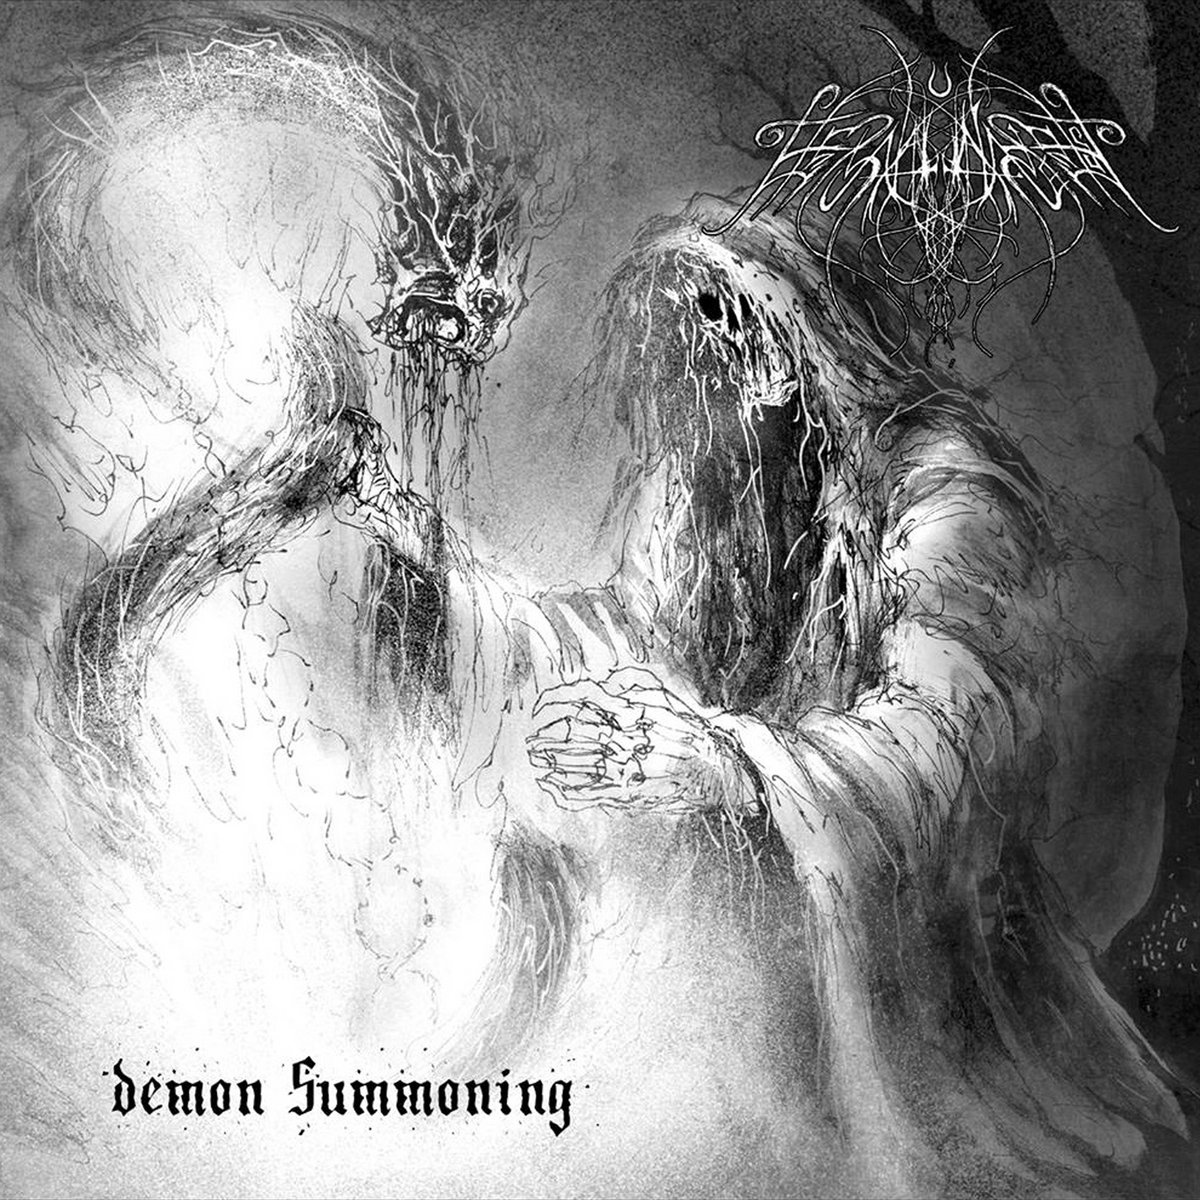 https://eternalalchemist.bandcamp.com/album/demon-summoning